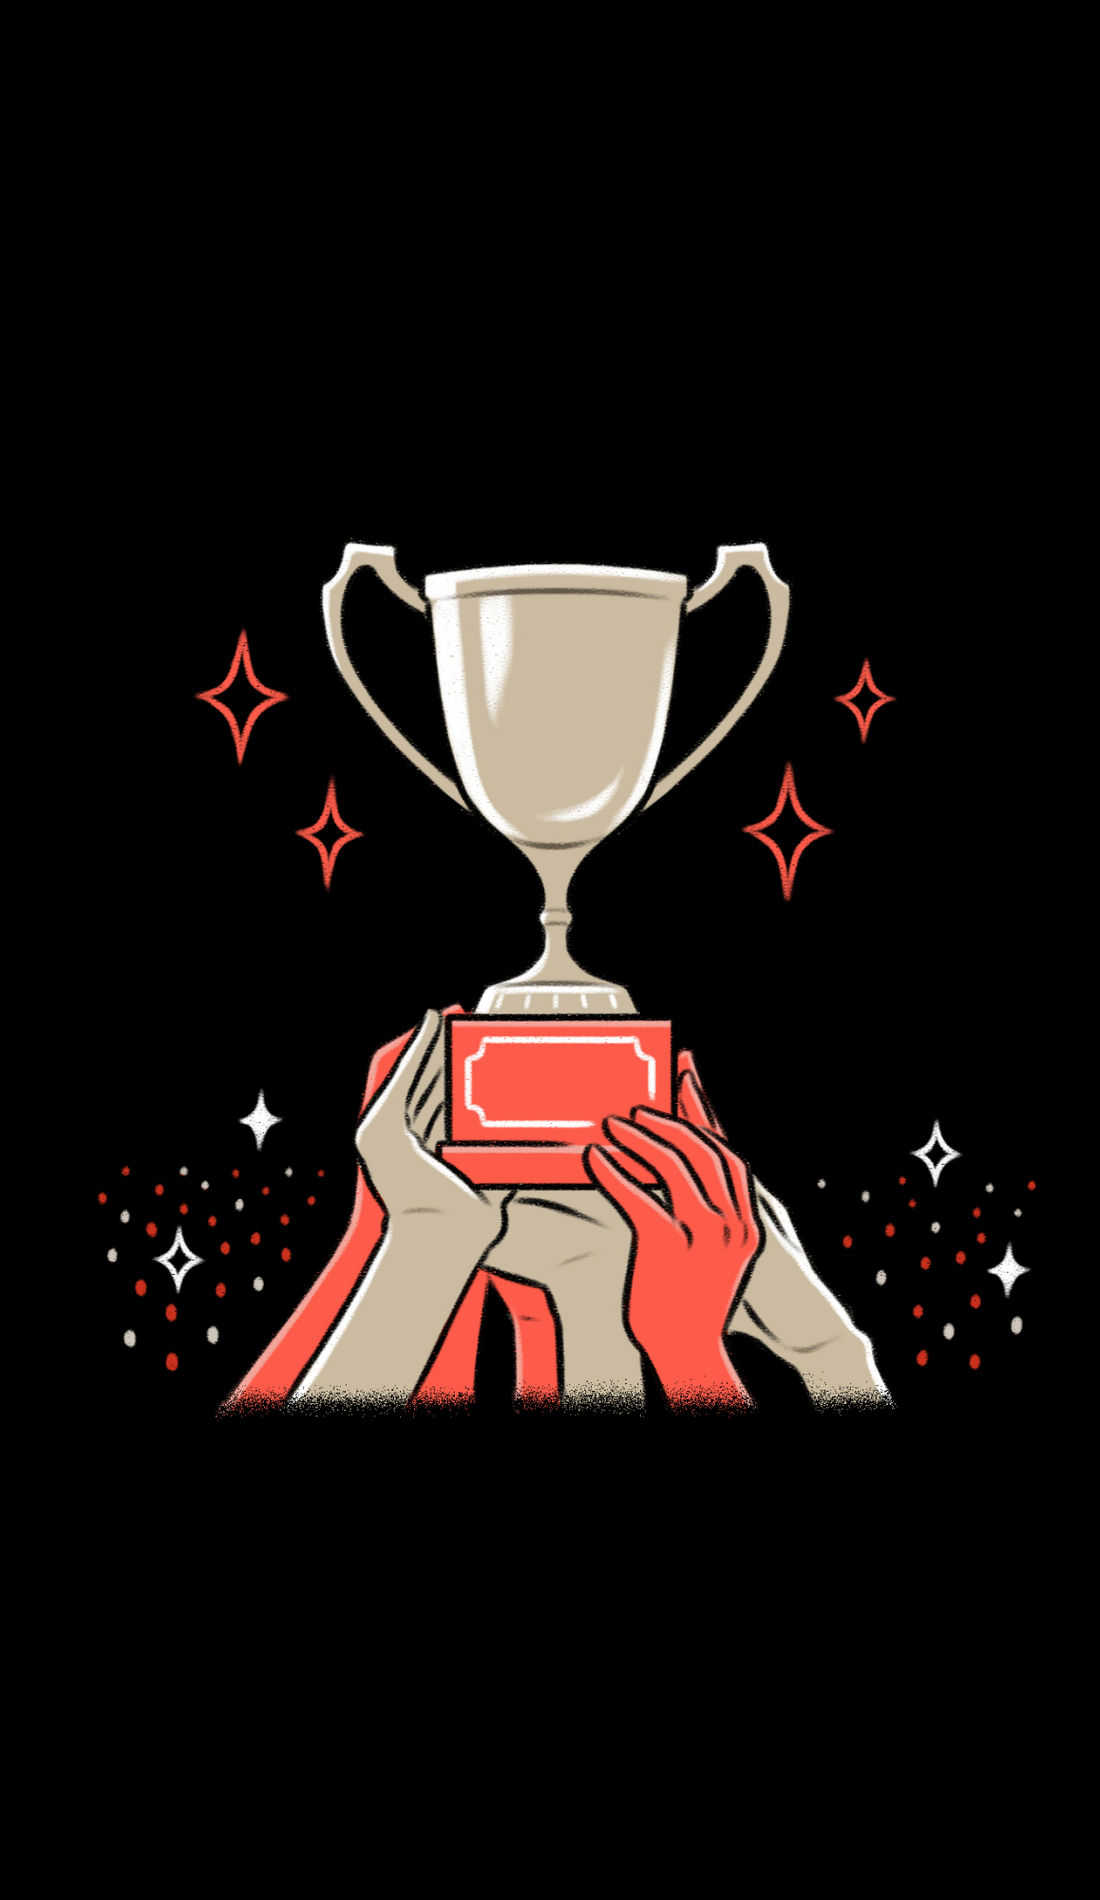 A CrossFit Games live event